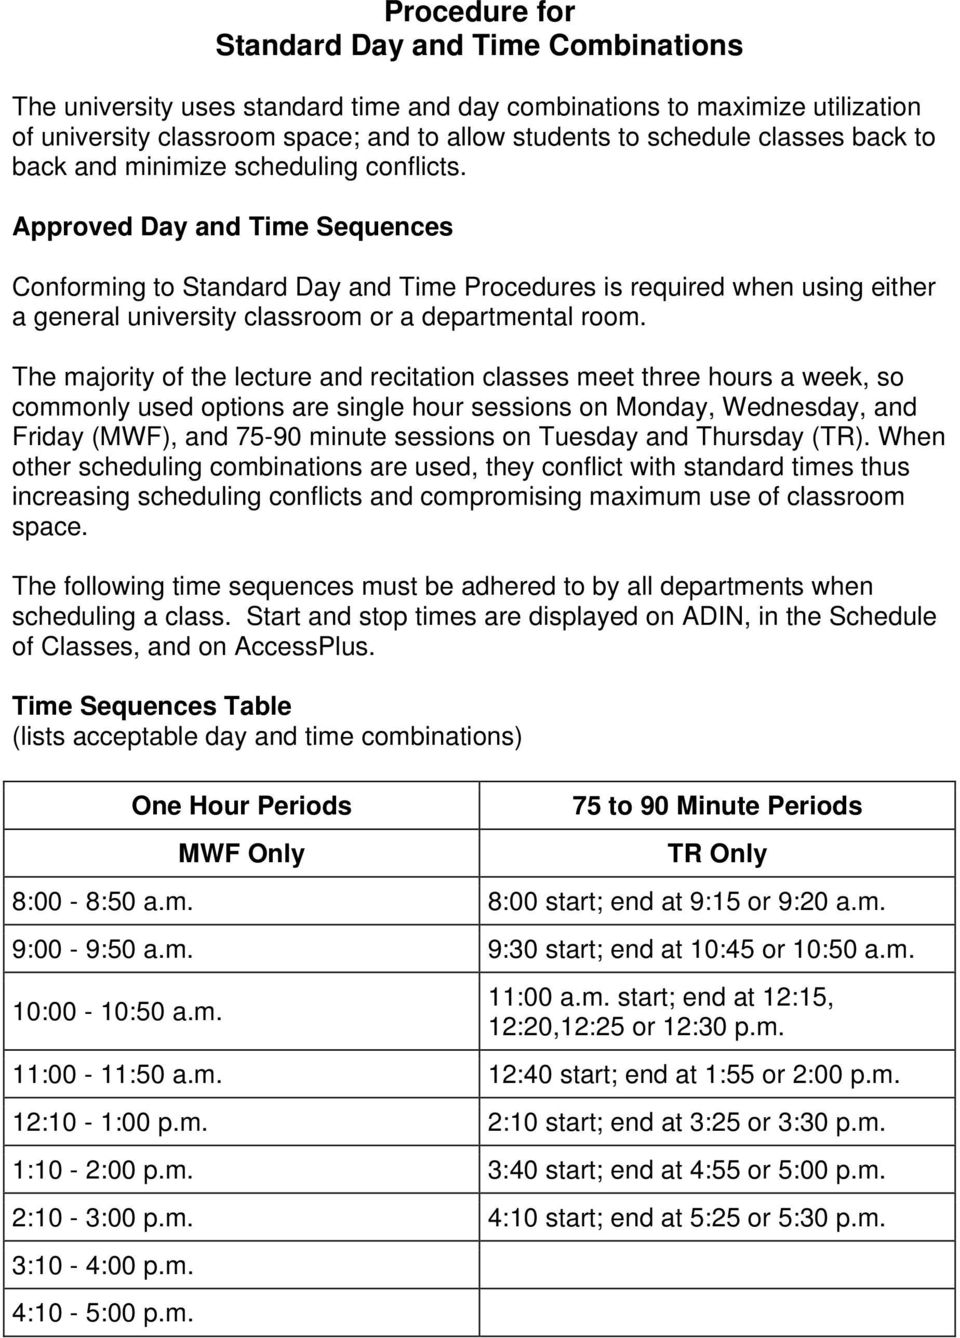 Approved Day and Time Sequences Conforming to Standard Day and Time Procedures is required when using either a general university classroom or a departmental room.